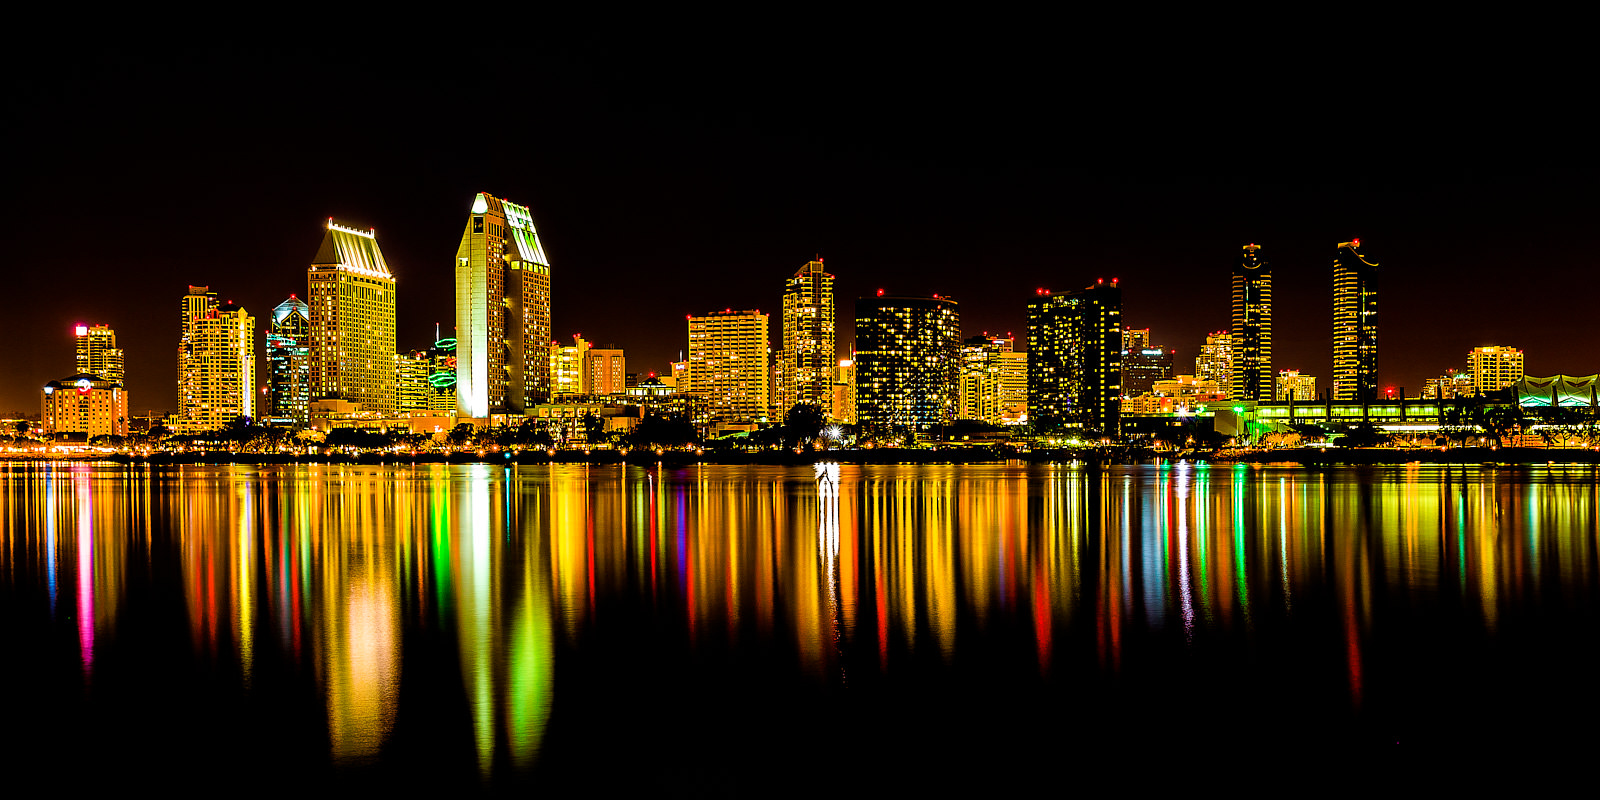 colorful long exposure photograph at night of downtown San Diego, California